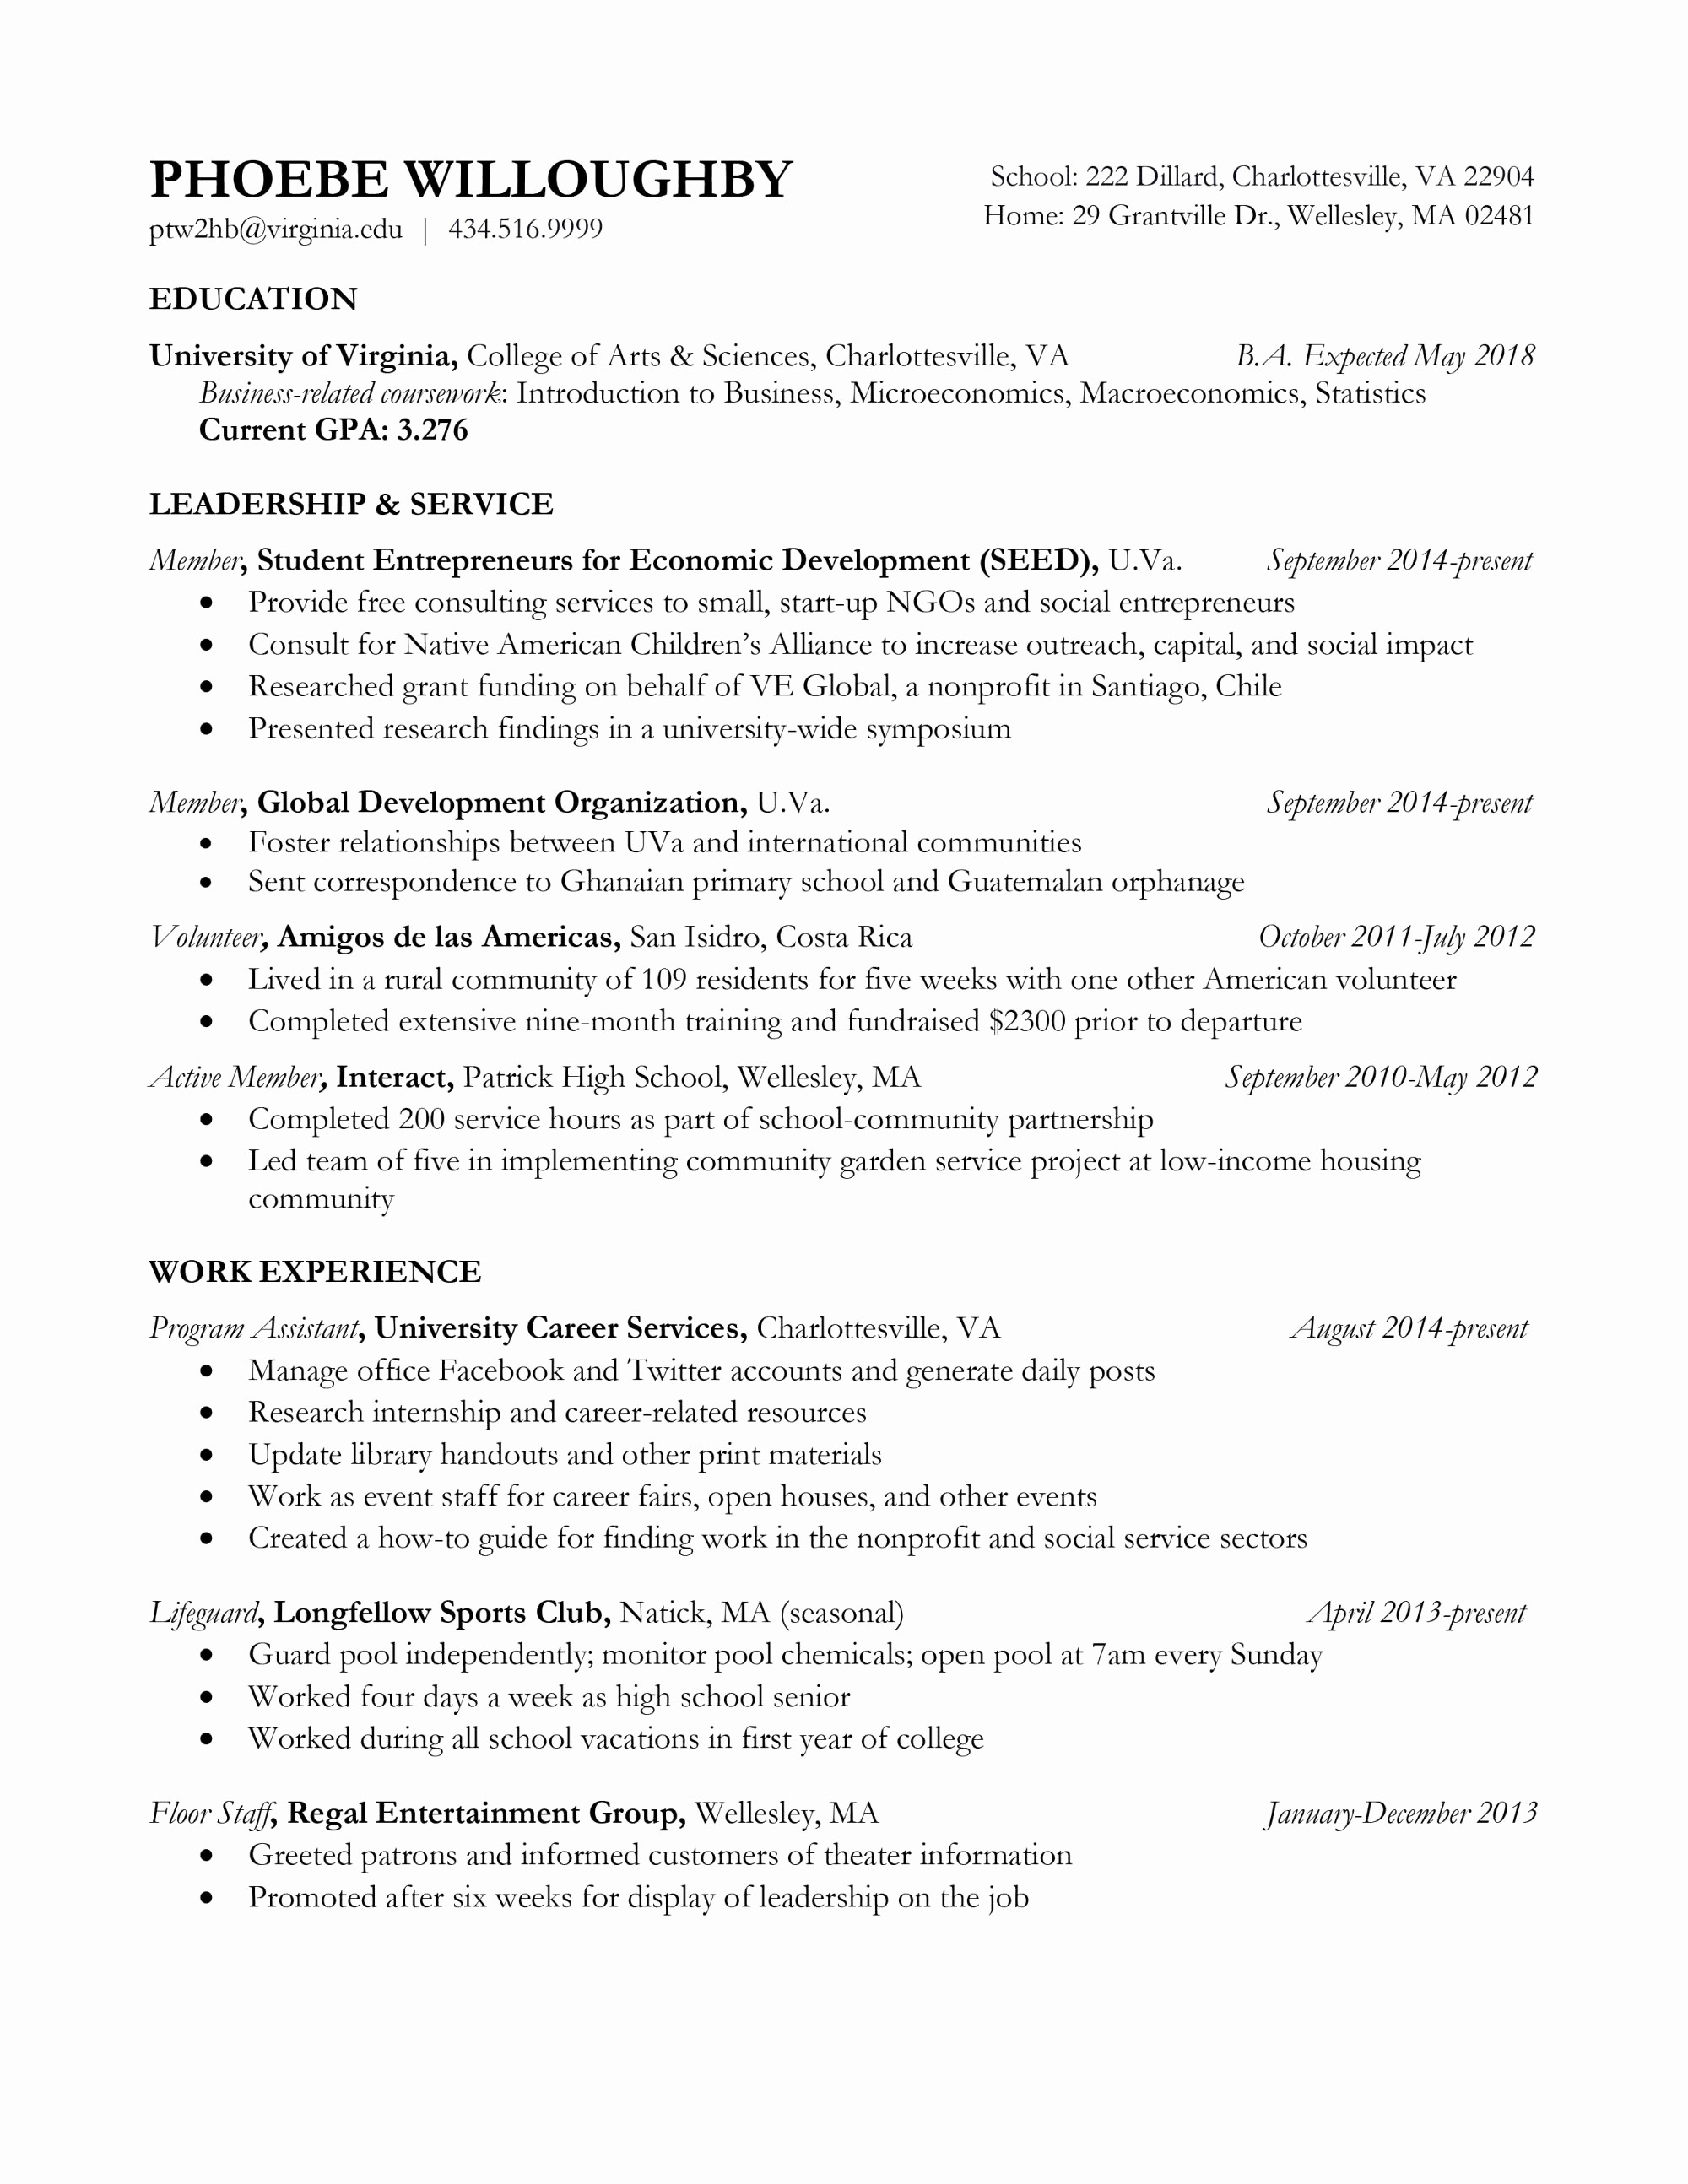 Lifeguard Responsibilities Resume - Resume Introduction Examples